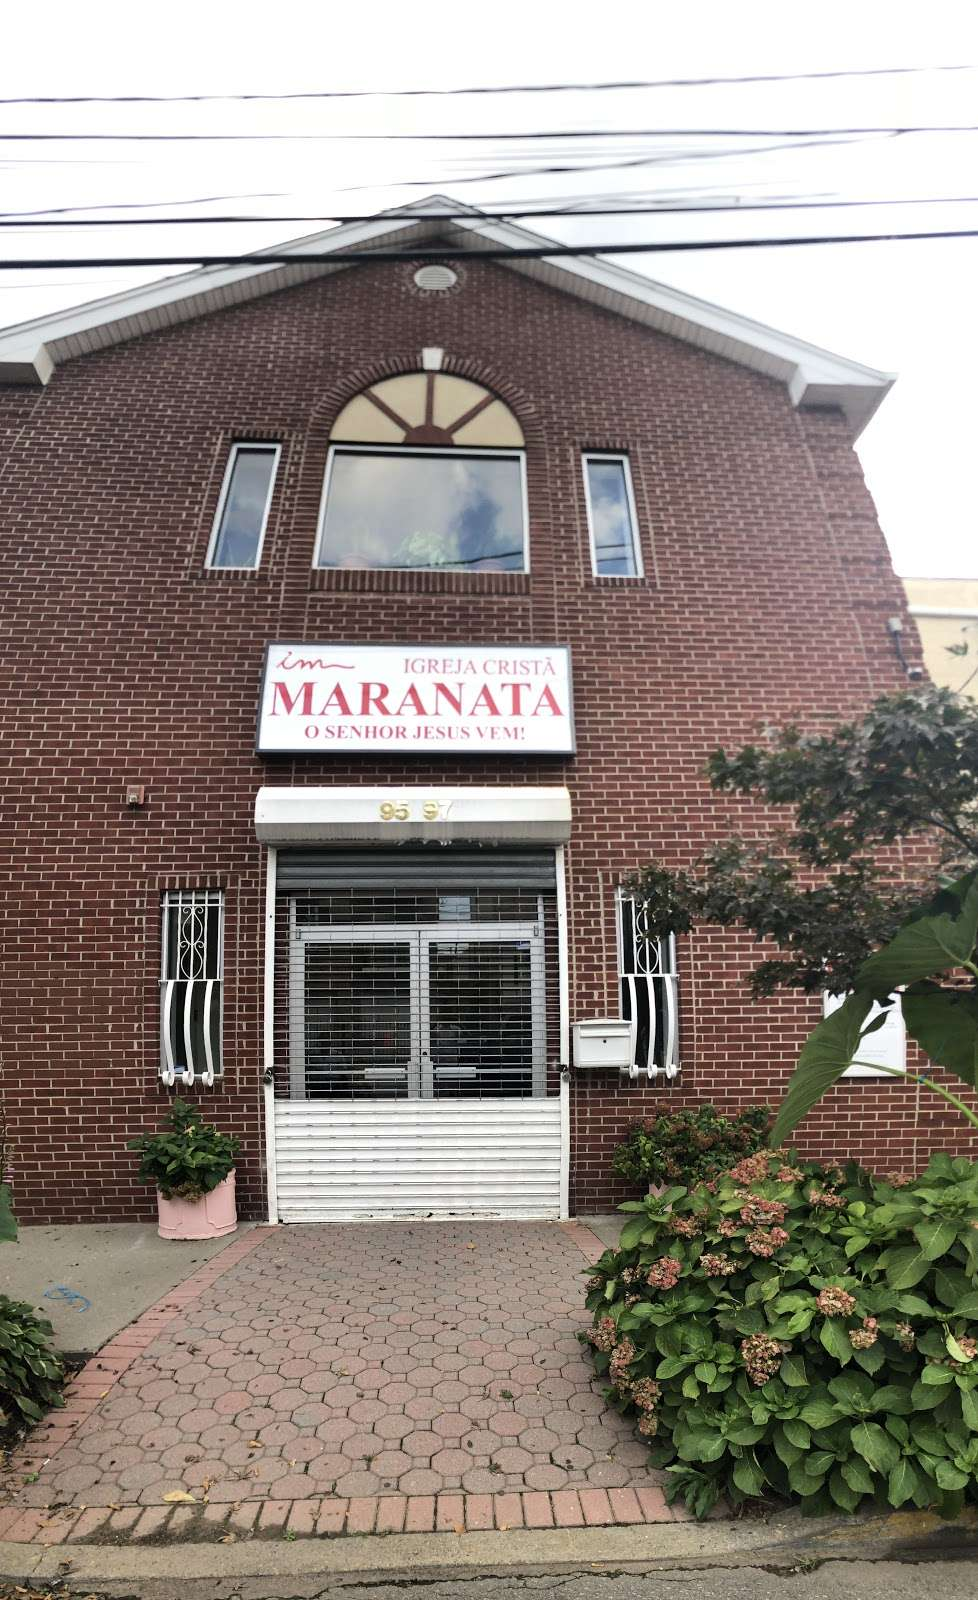 Maranatha Christian Church - church  | Photo 1 of 5 | Address: 97 St Francis St, Newark, NJ 07105, USA